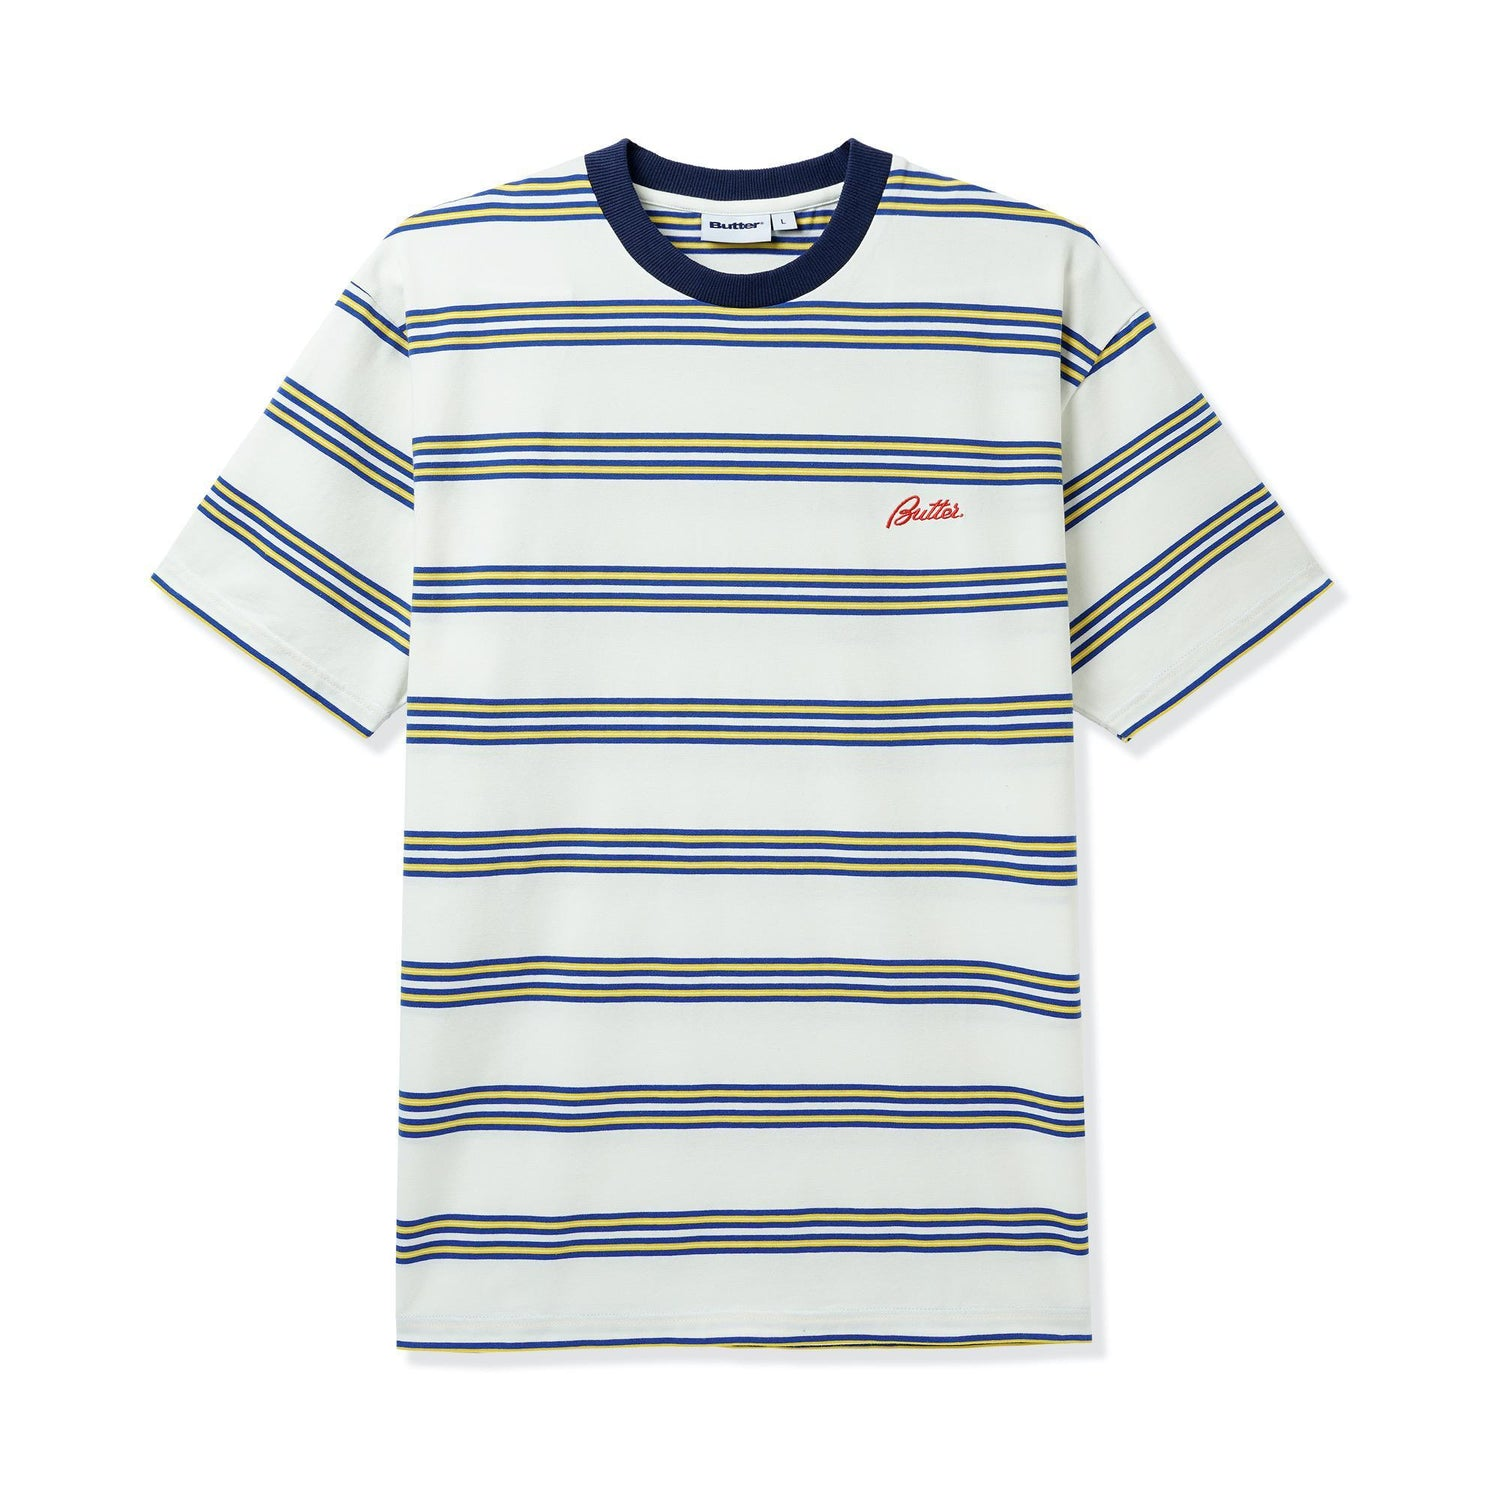 Market Stripe Tee, White / Yellow / Royal